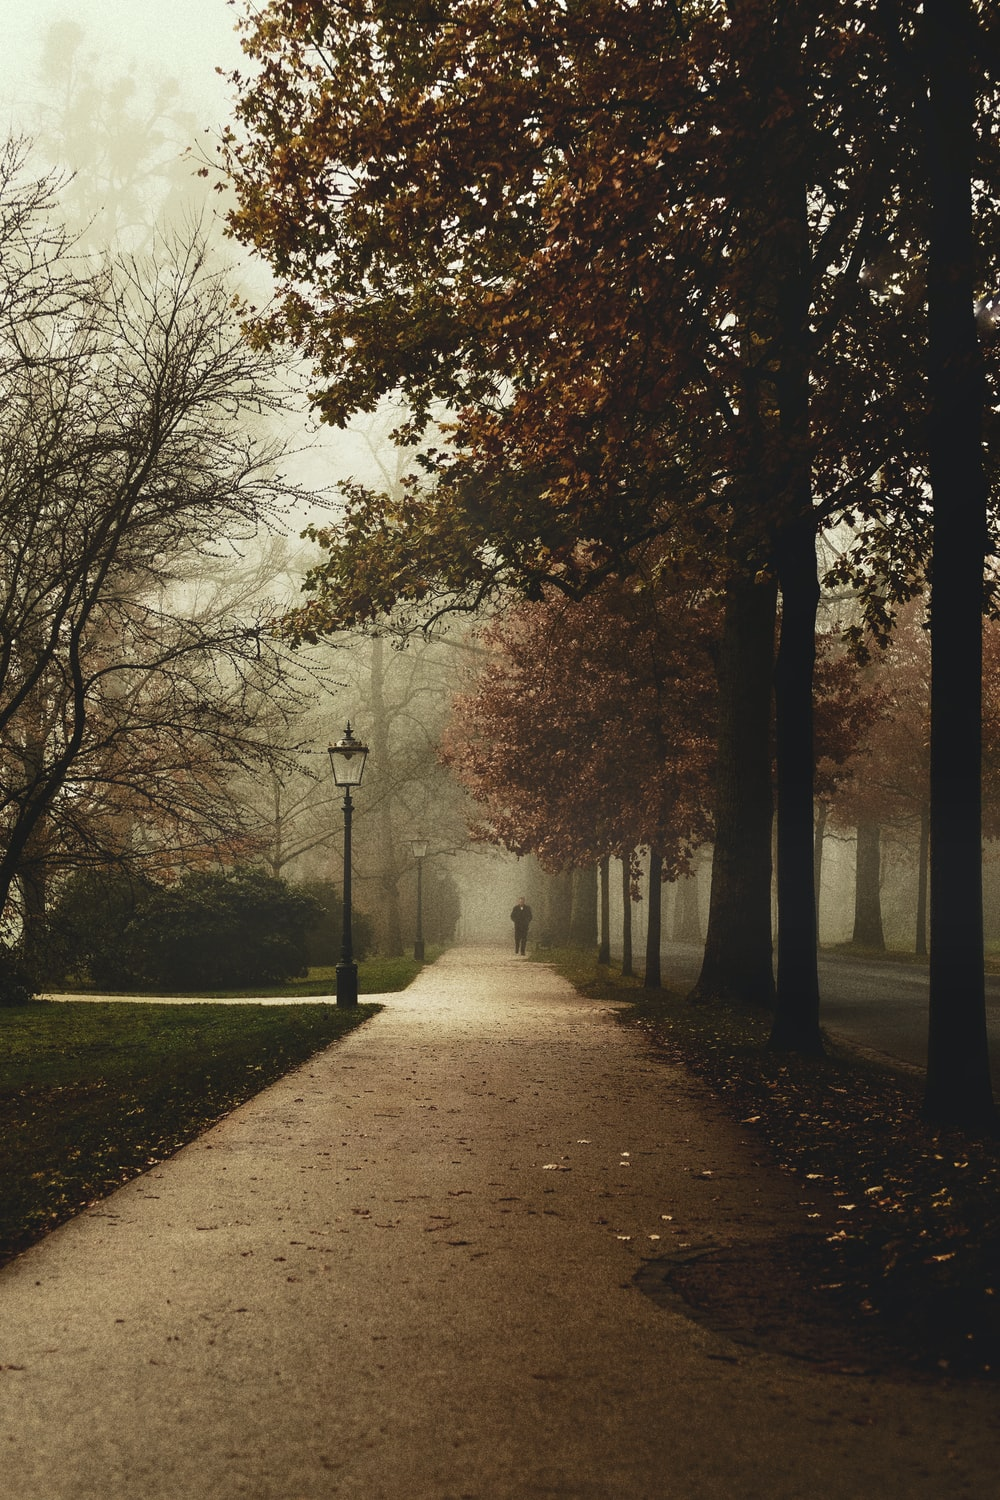 brown trees and pathway